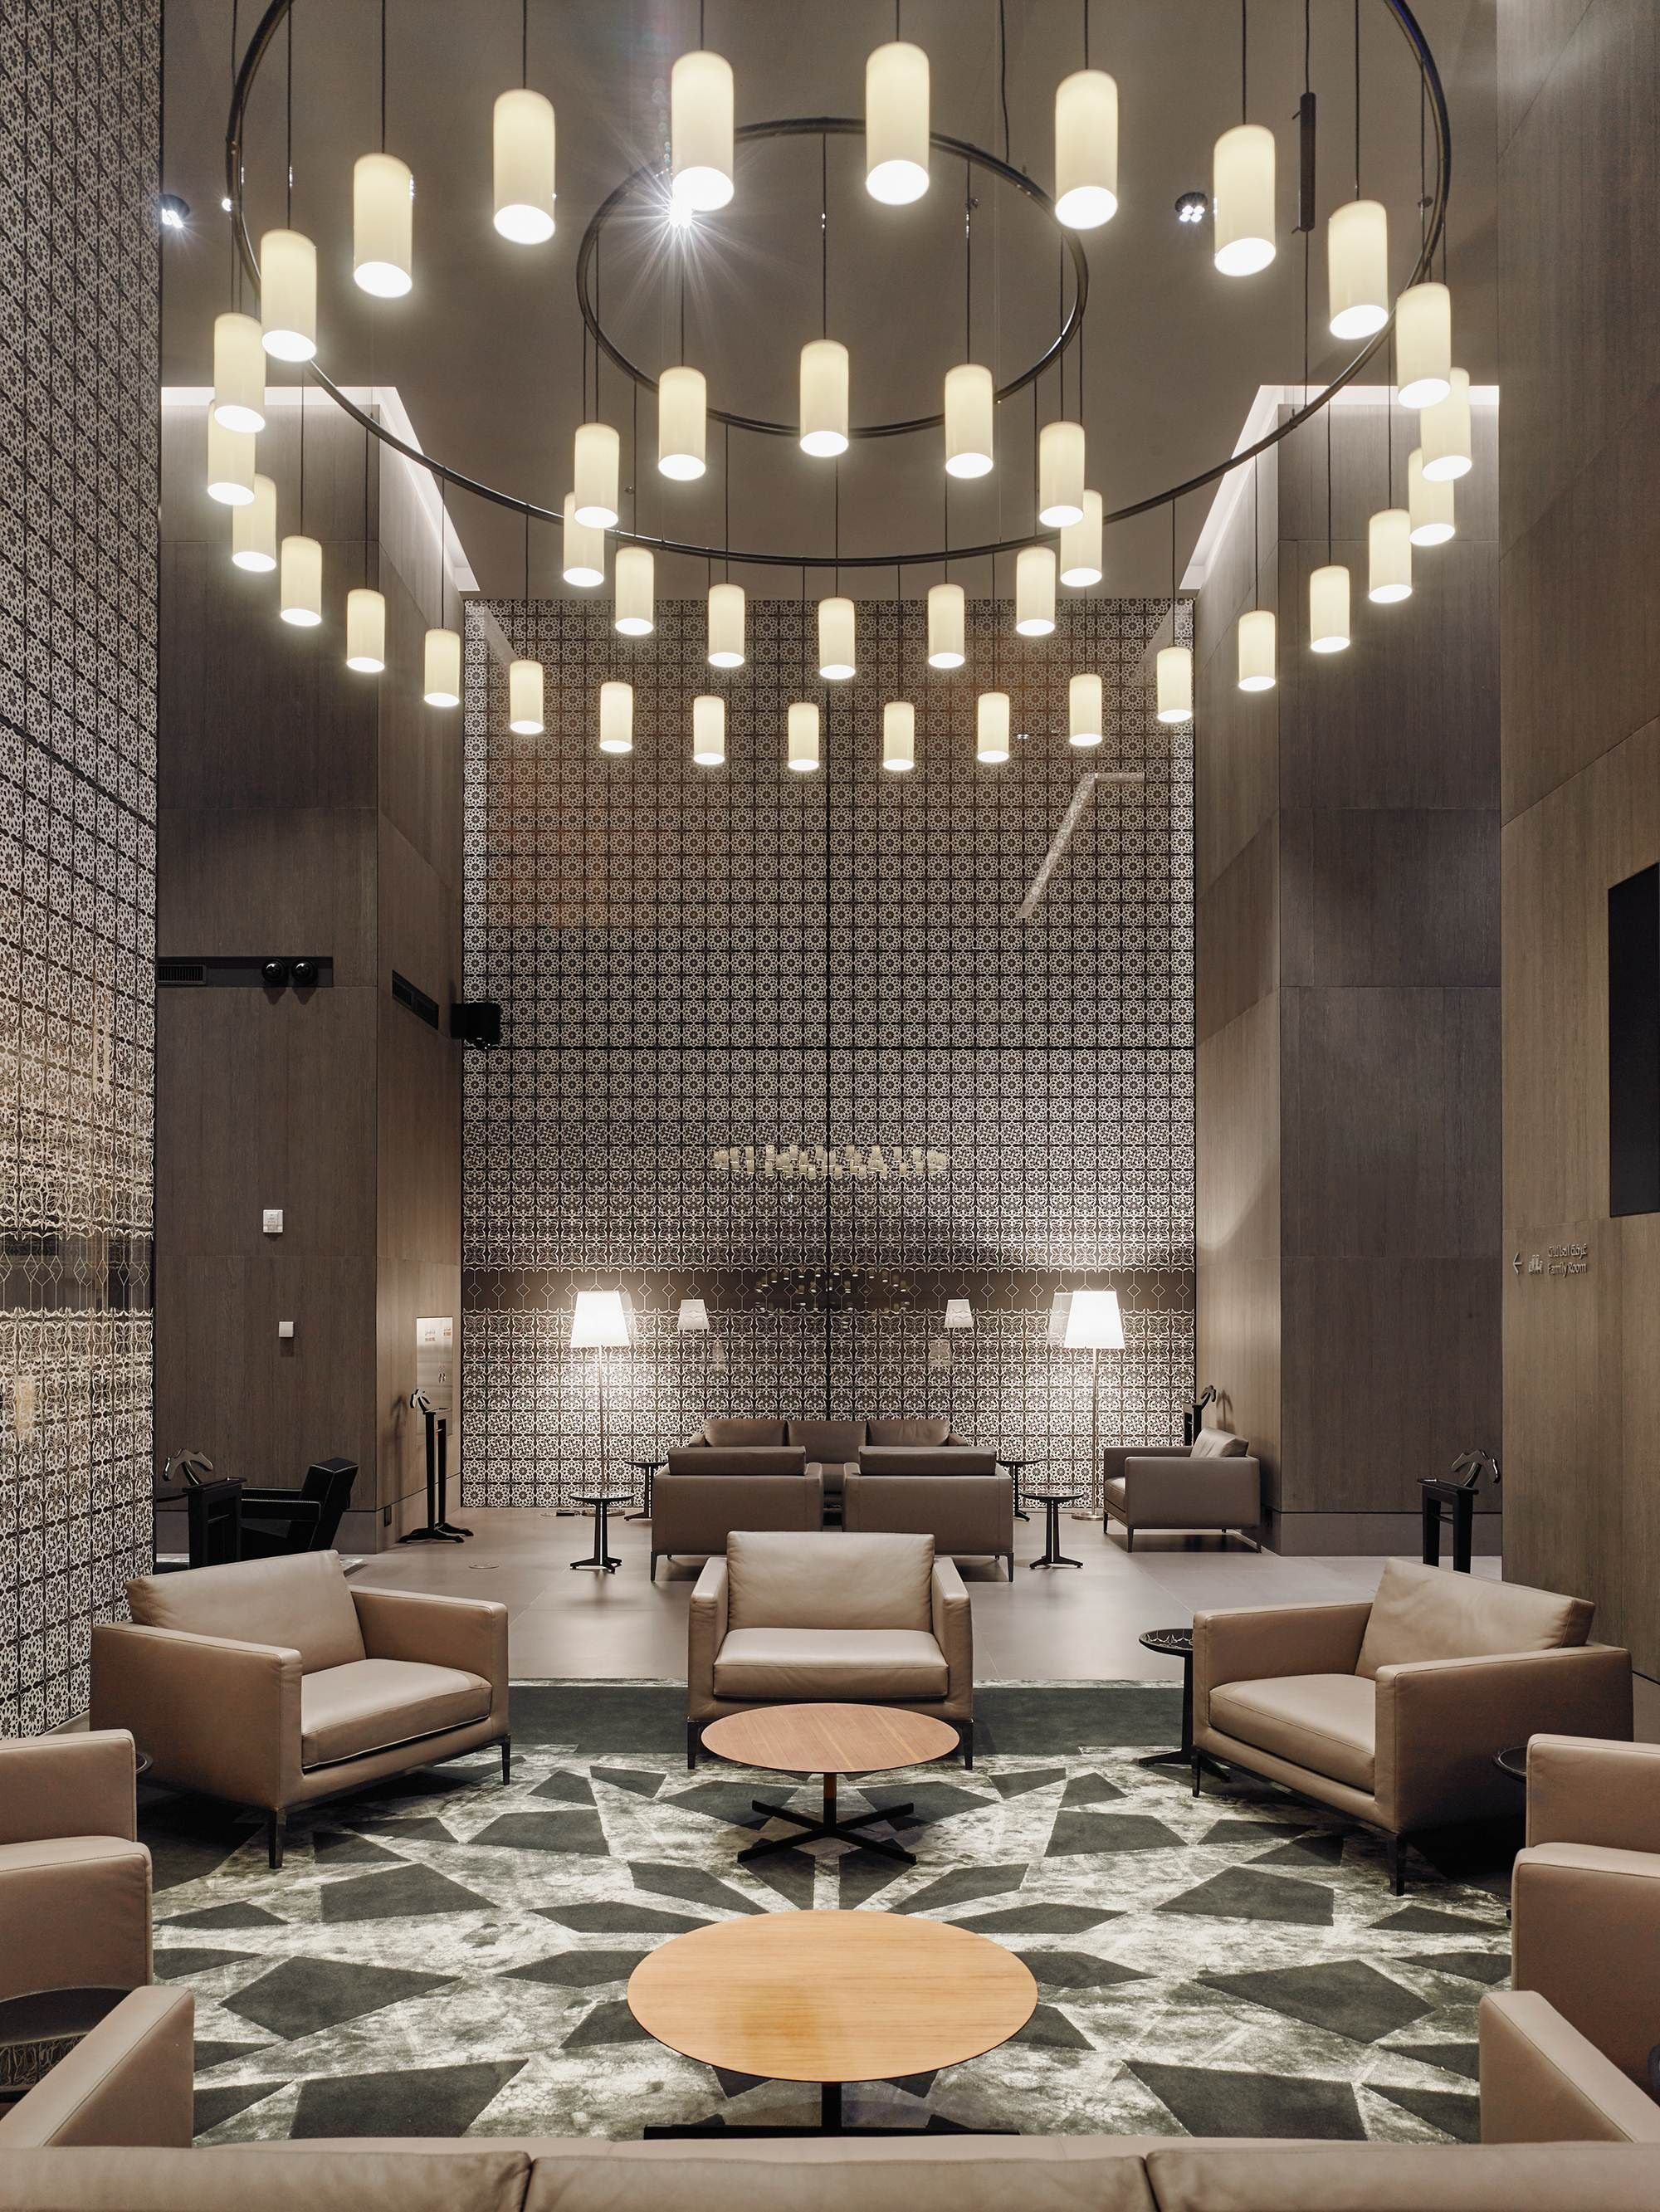 Hotel Interior: Find The Best And Most Luxurious Inspiration For Your Next